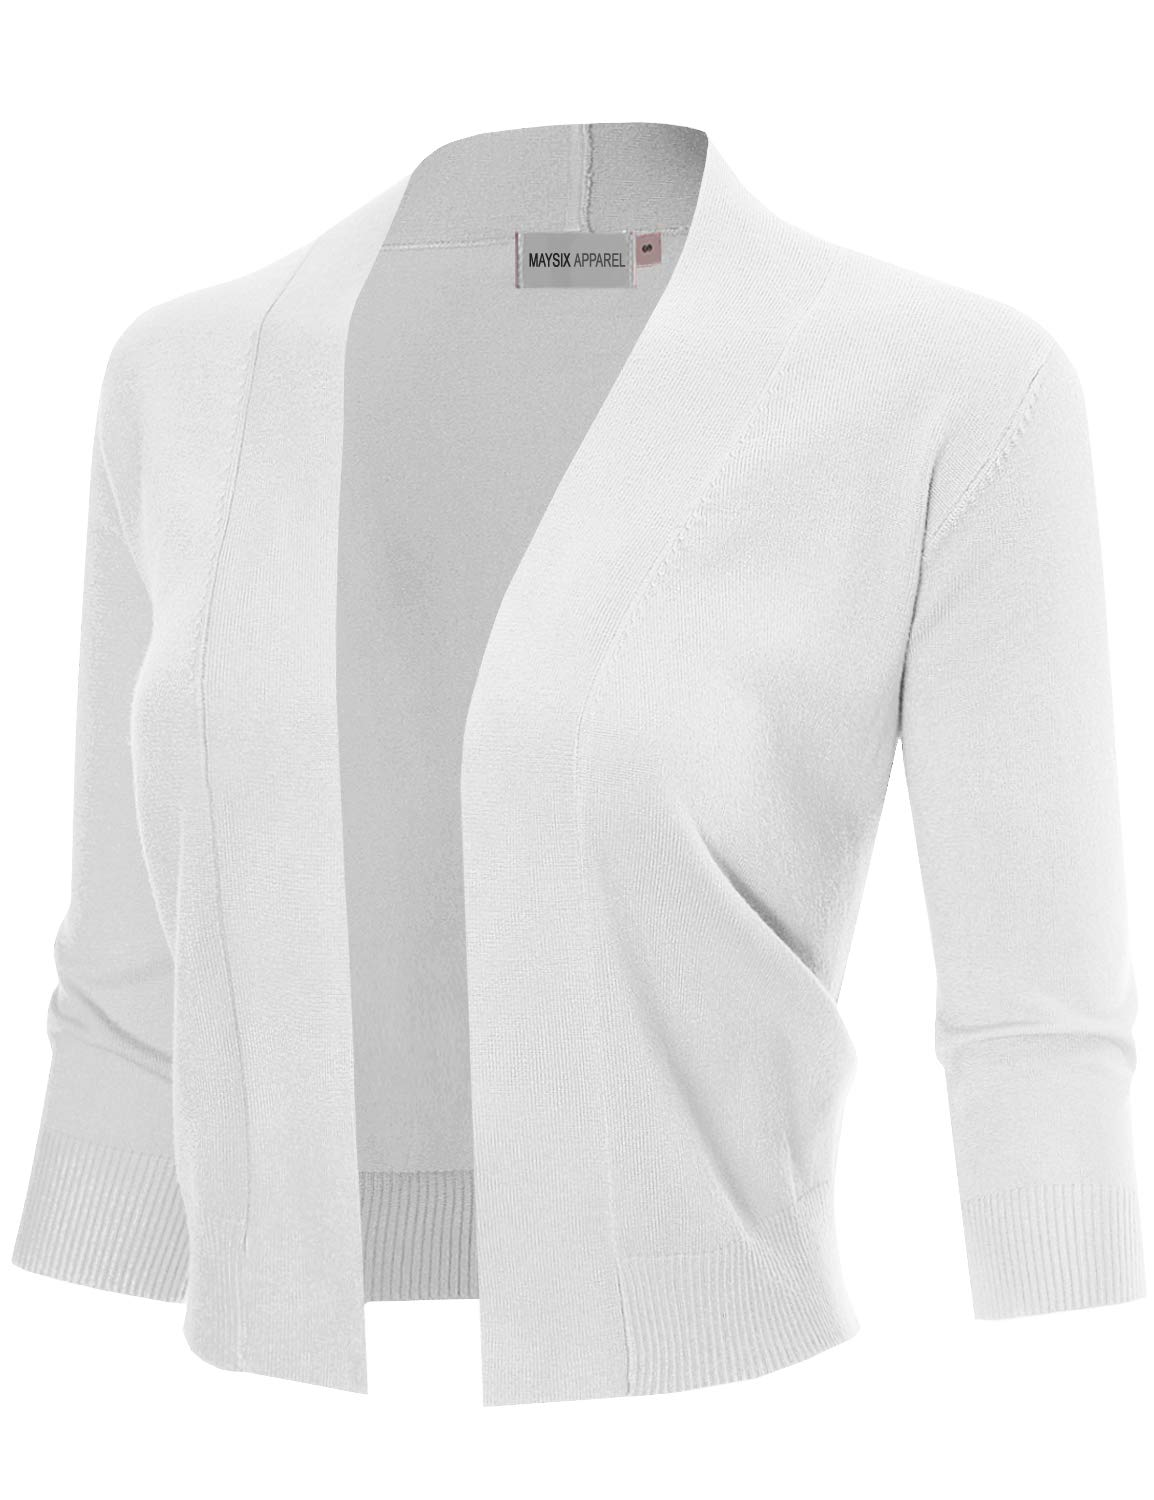 MAYSIX APPAREL Womens 3/4 Sleeve Solid Open Bolero Cropped Cardigan WHITE XL